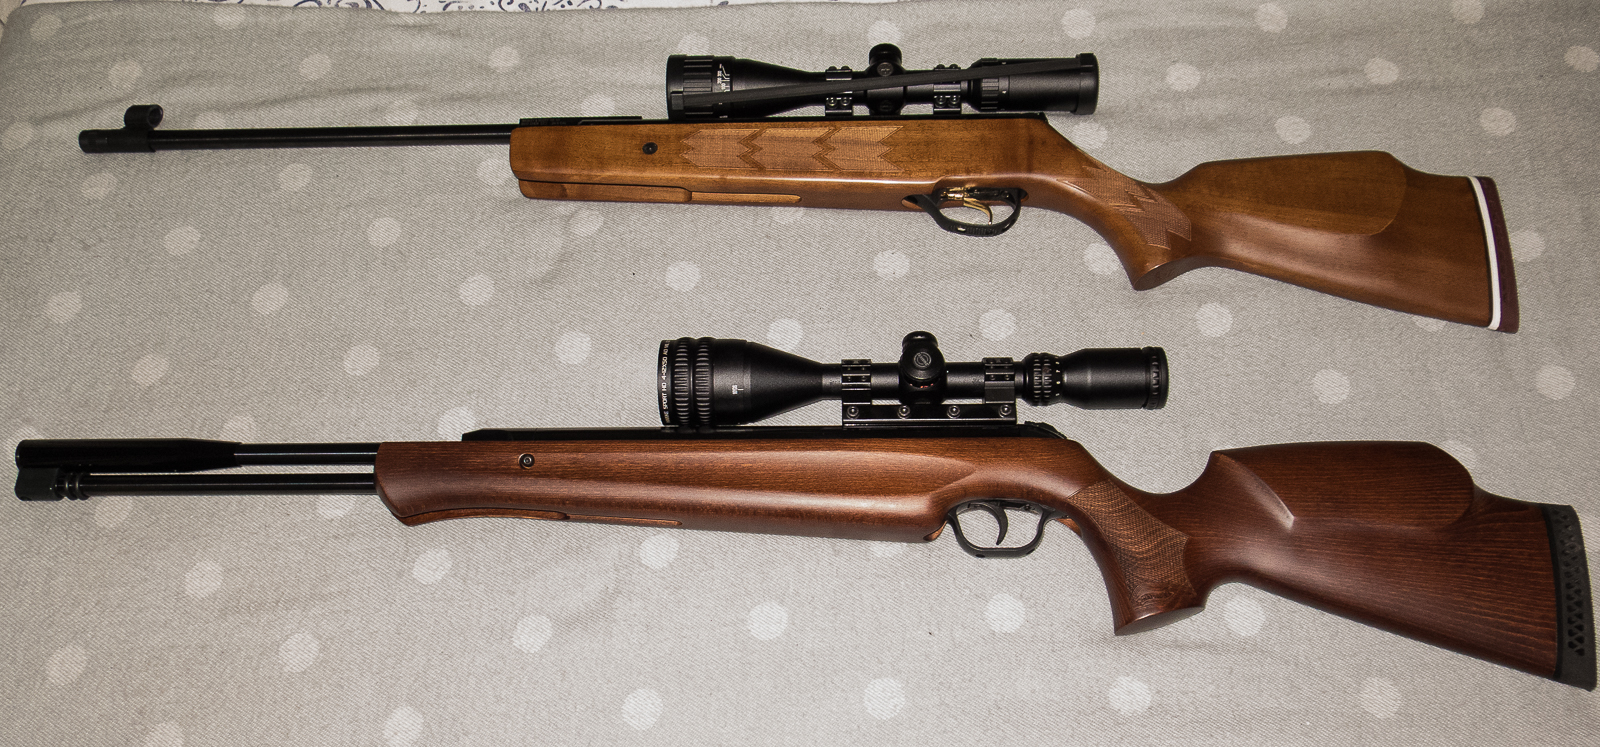 Air rifle types